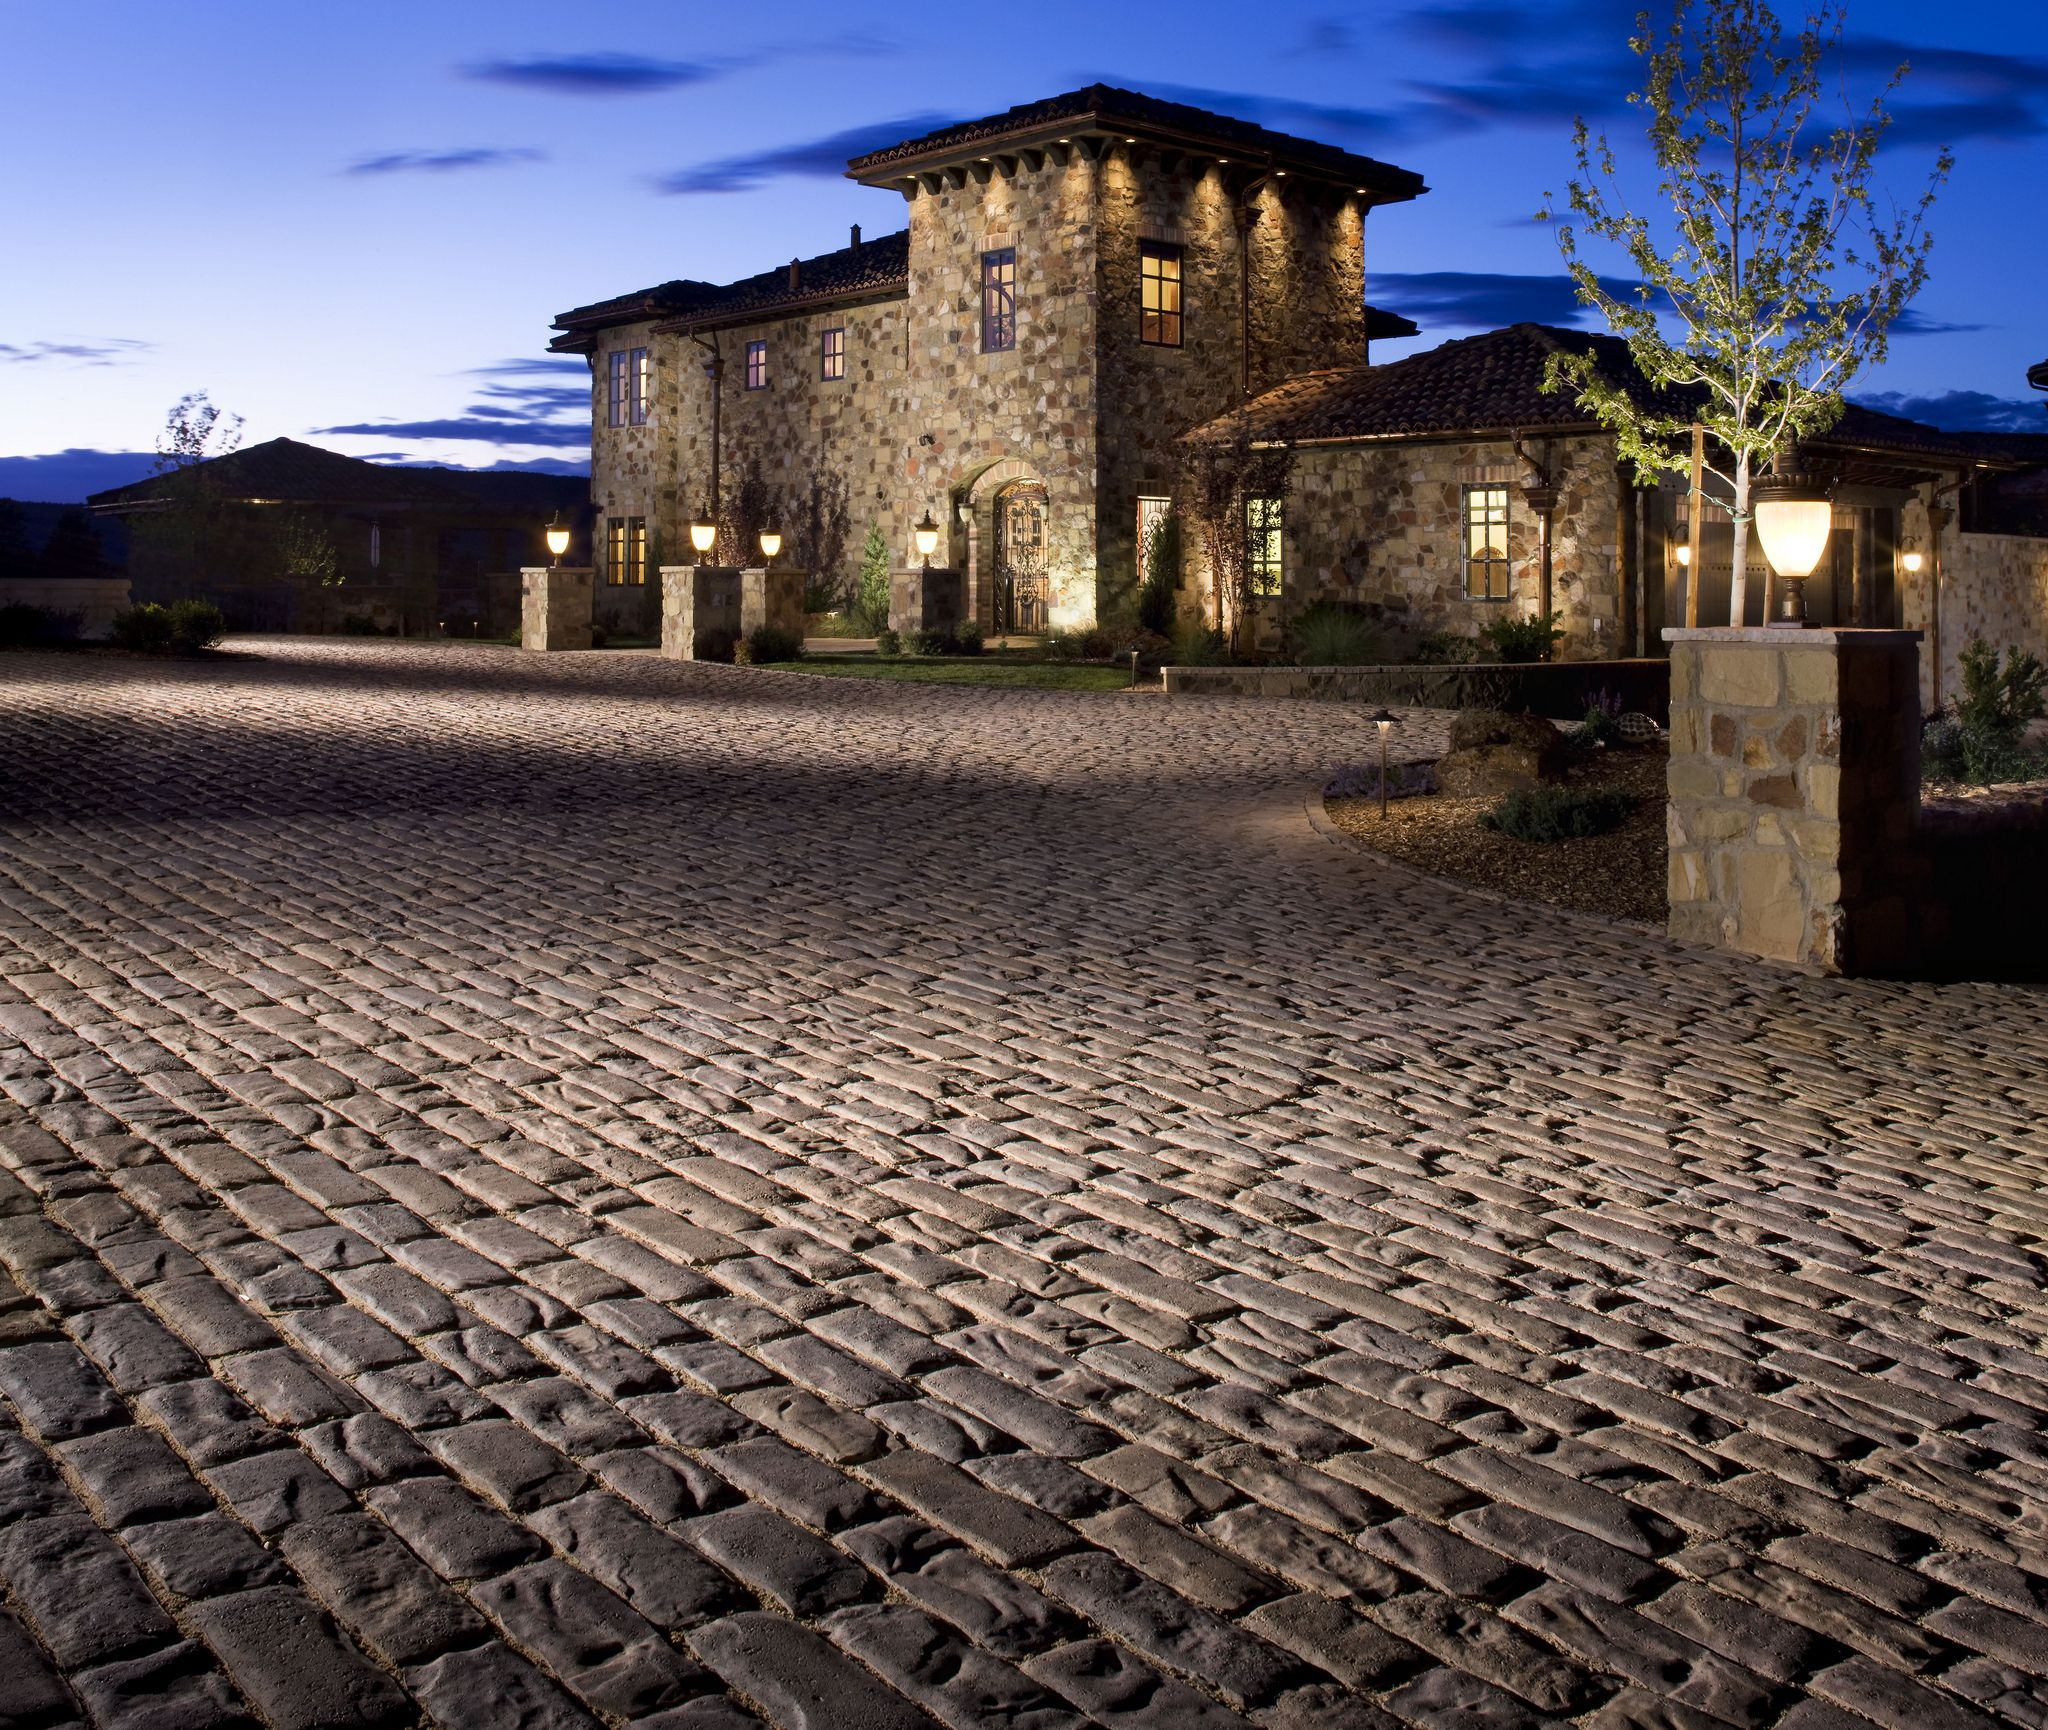 How To Install Pavers, Paver